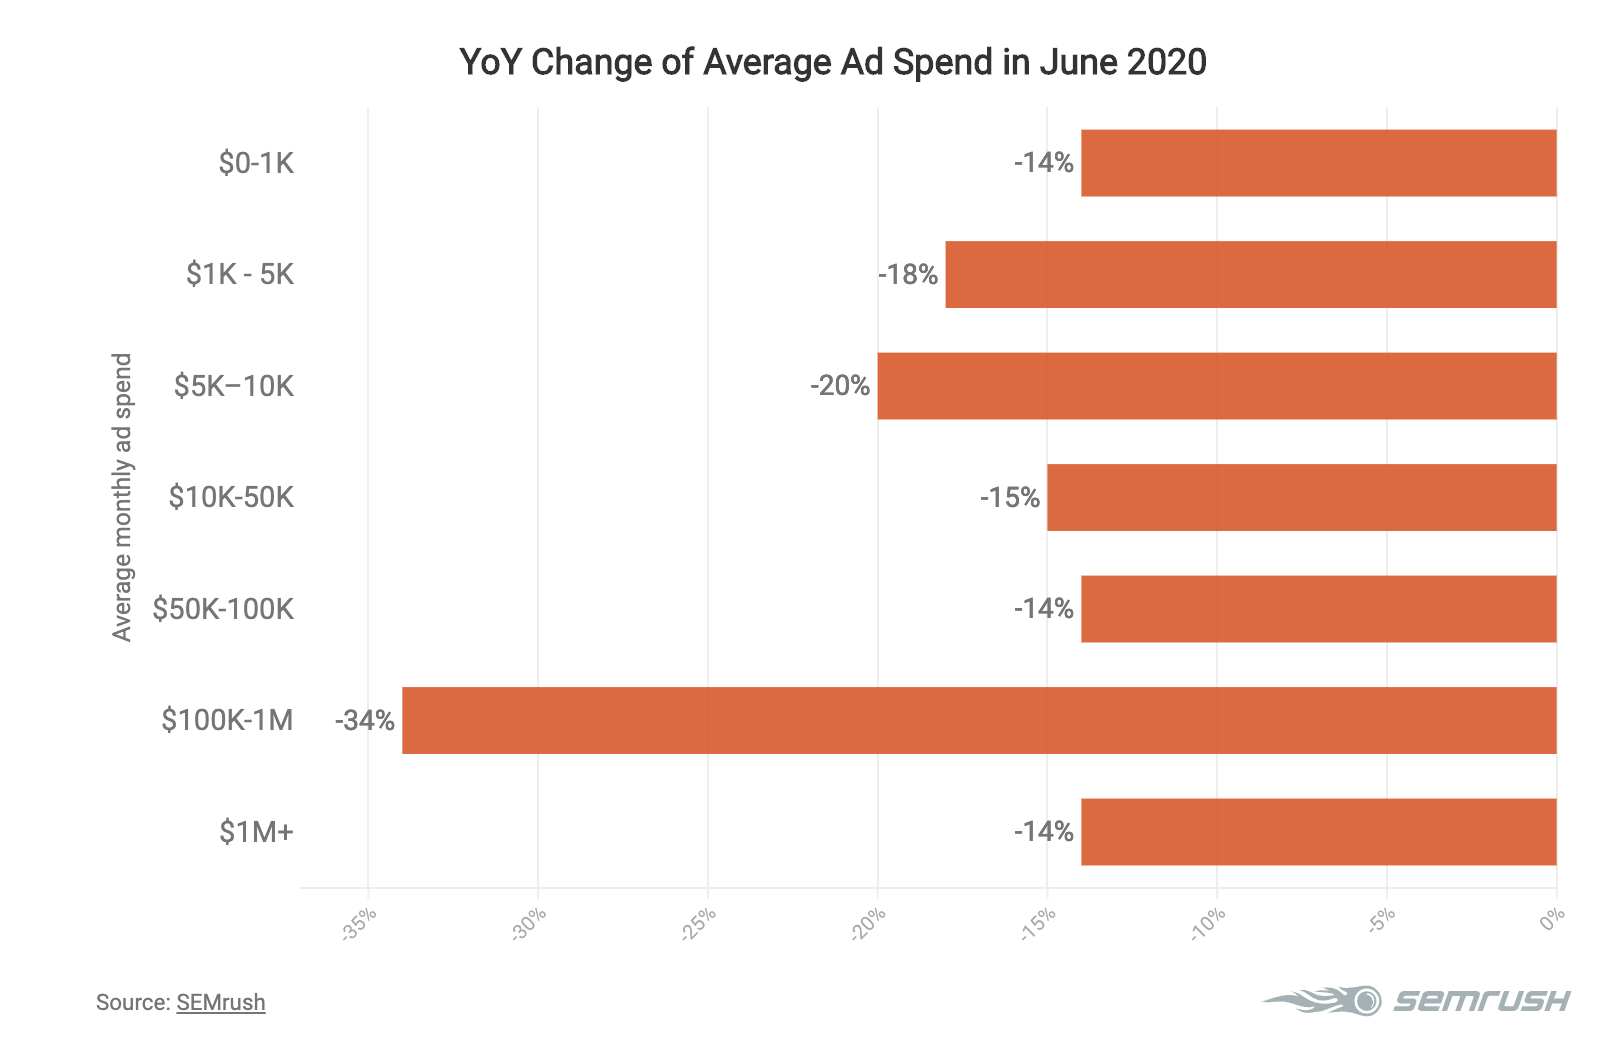 Changes in online advertising spend in June 2020